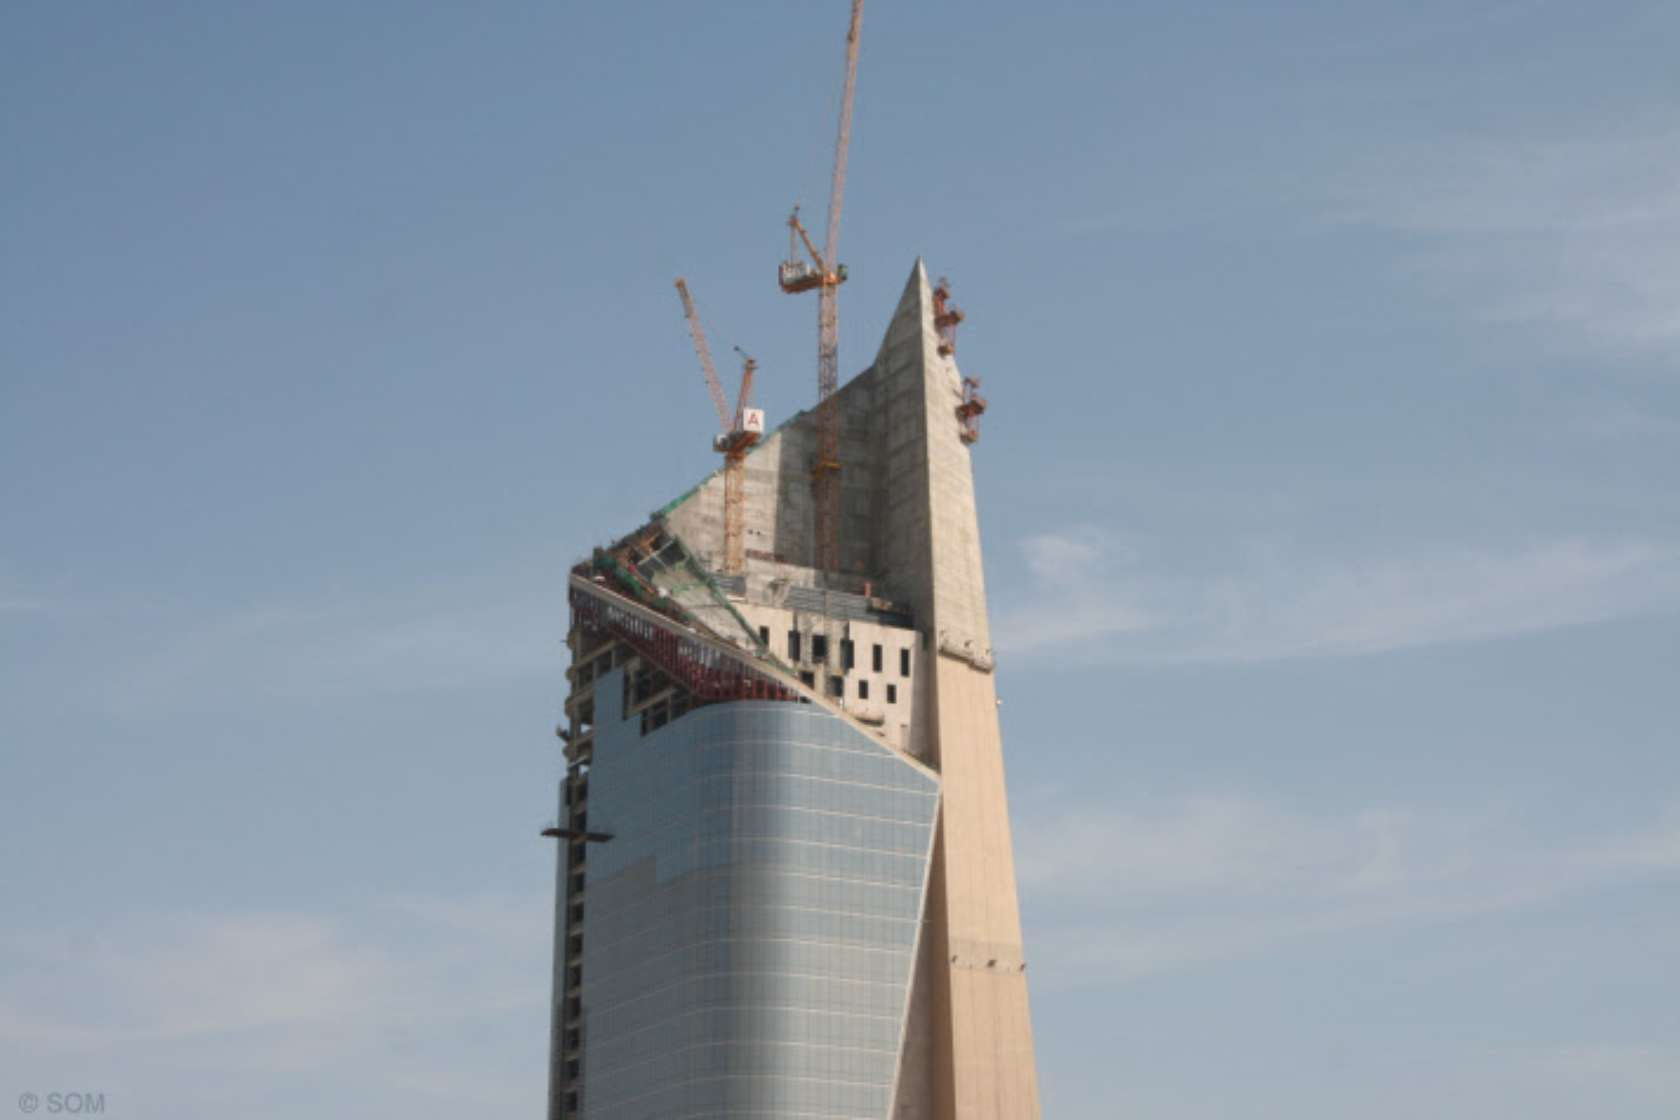 SOM's New Concrete Skyscraper Rises in Kuwait